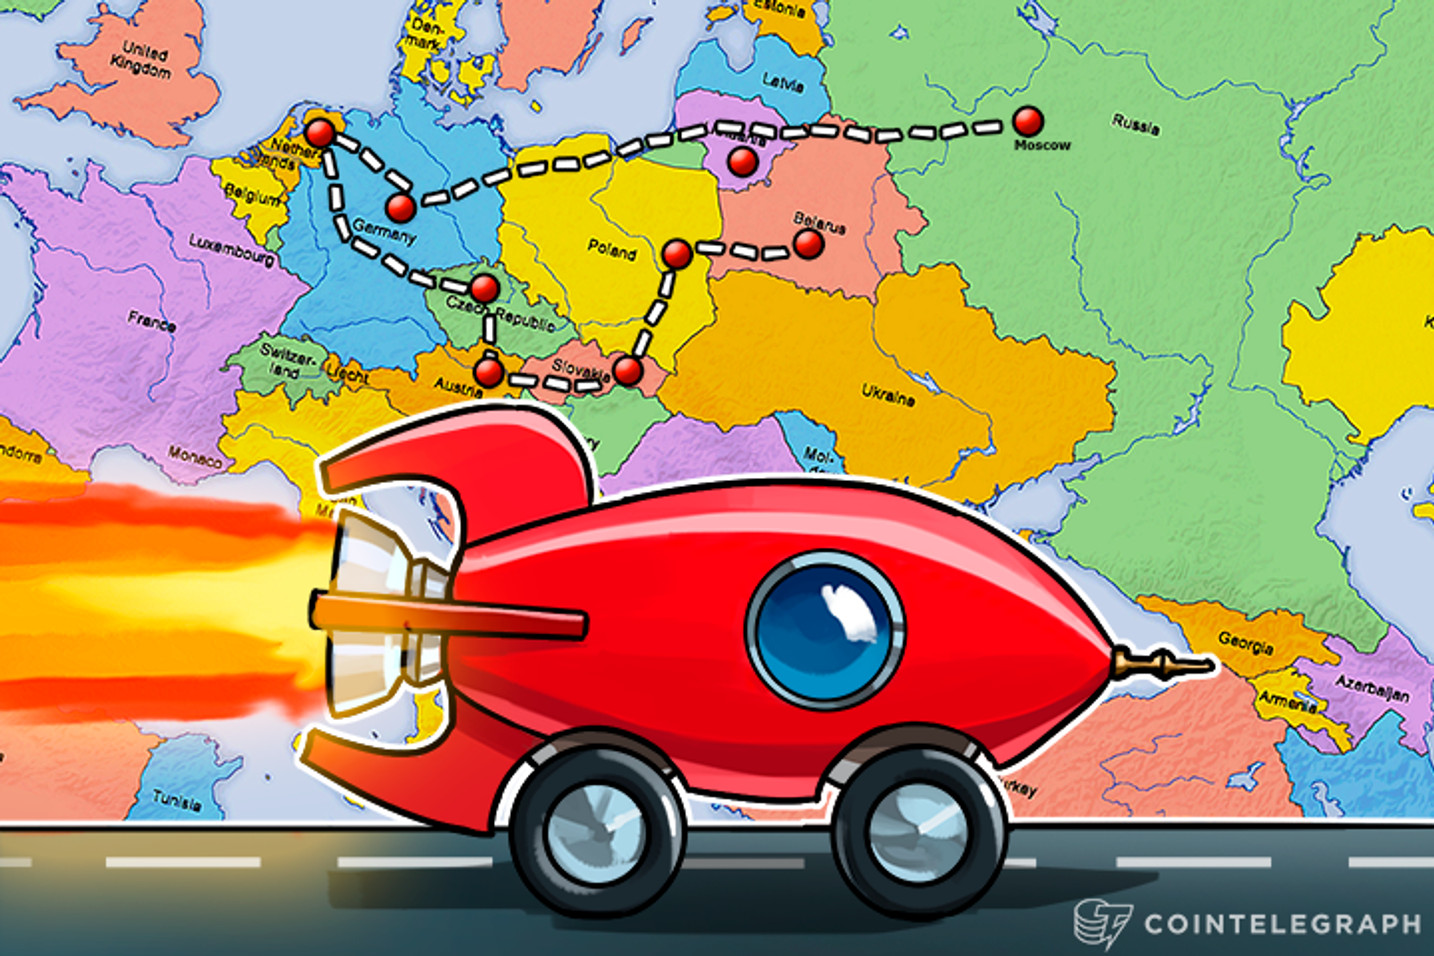 Bitcoin on Wheels: How We Took Part in European Bitcoin Tour